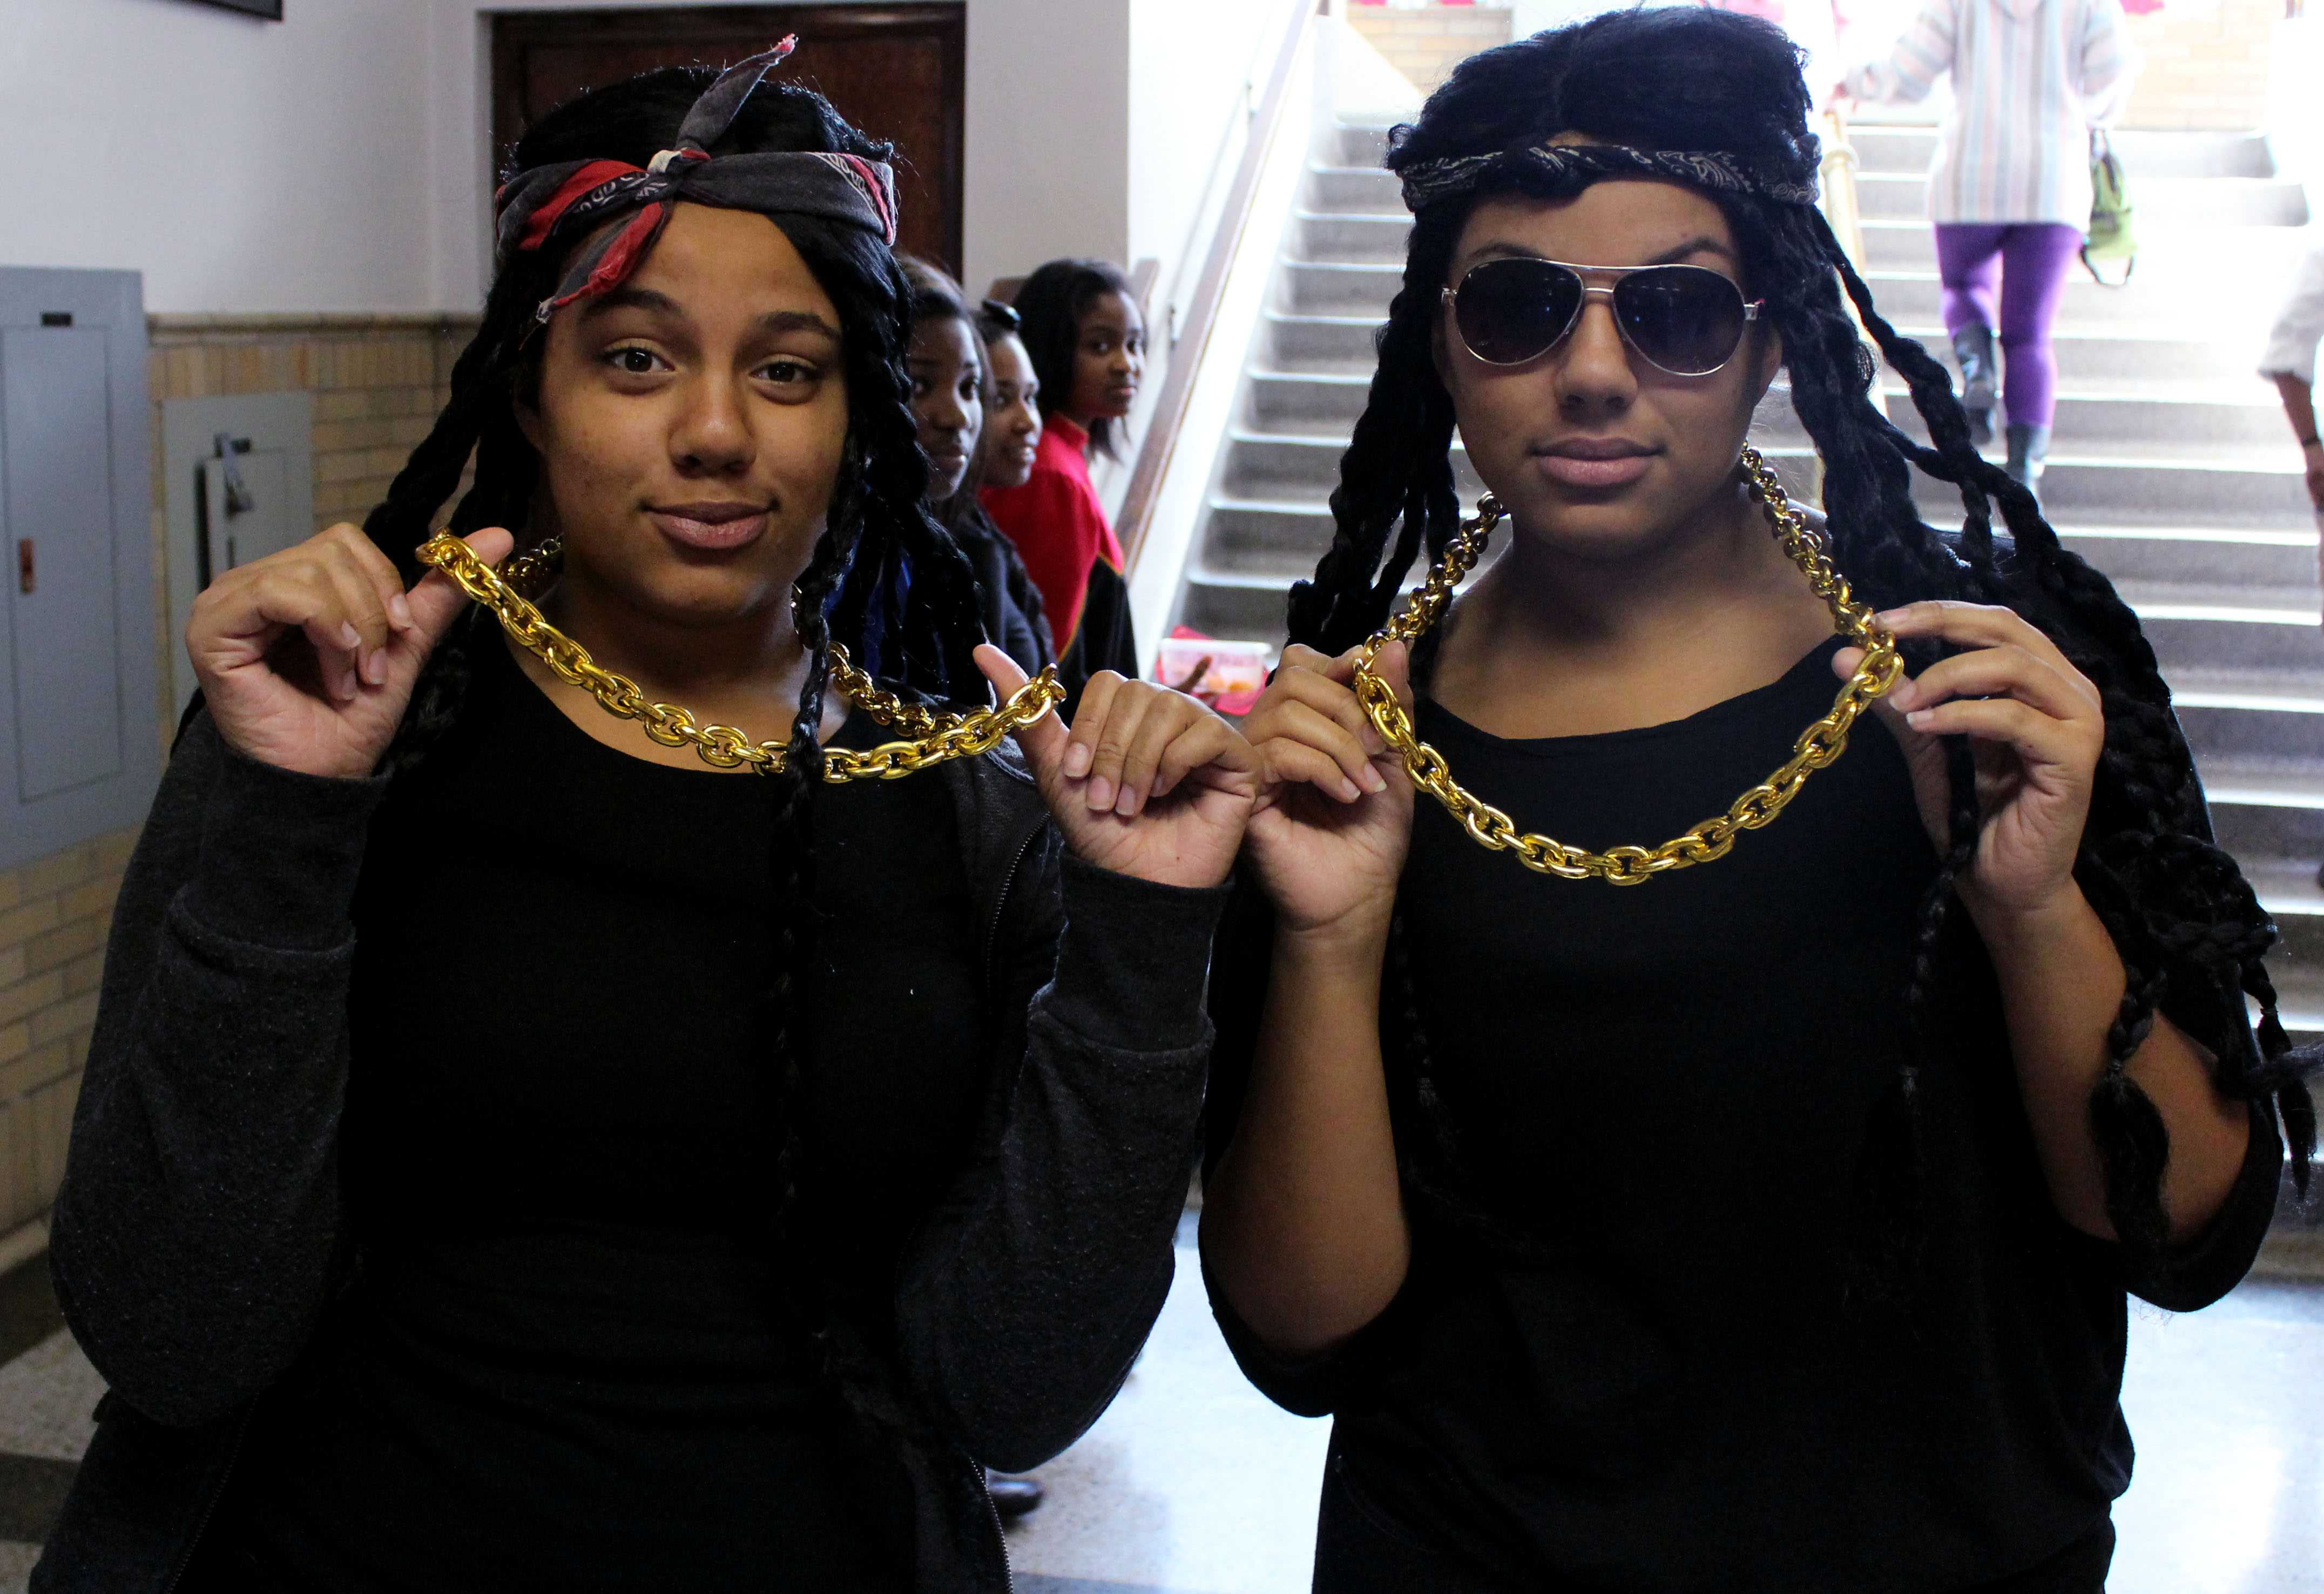 Kylie Gray (11) and Kiara Gray (11) dress as the rapper 2 Chainz and each one of his chains for Costume Day for Red/White Week. Photo by Mesa Serikali